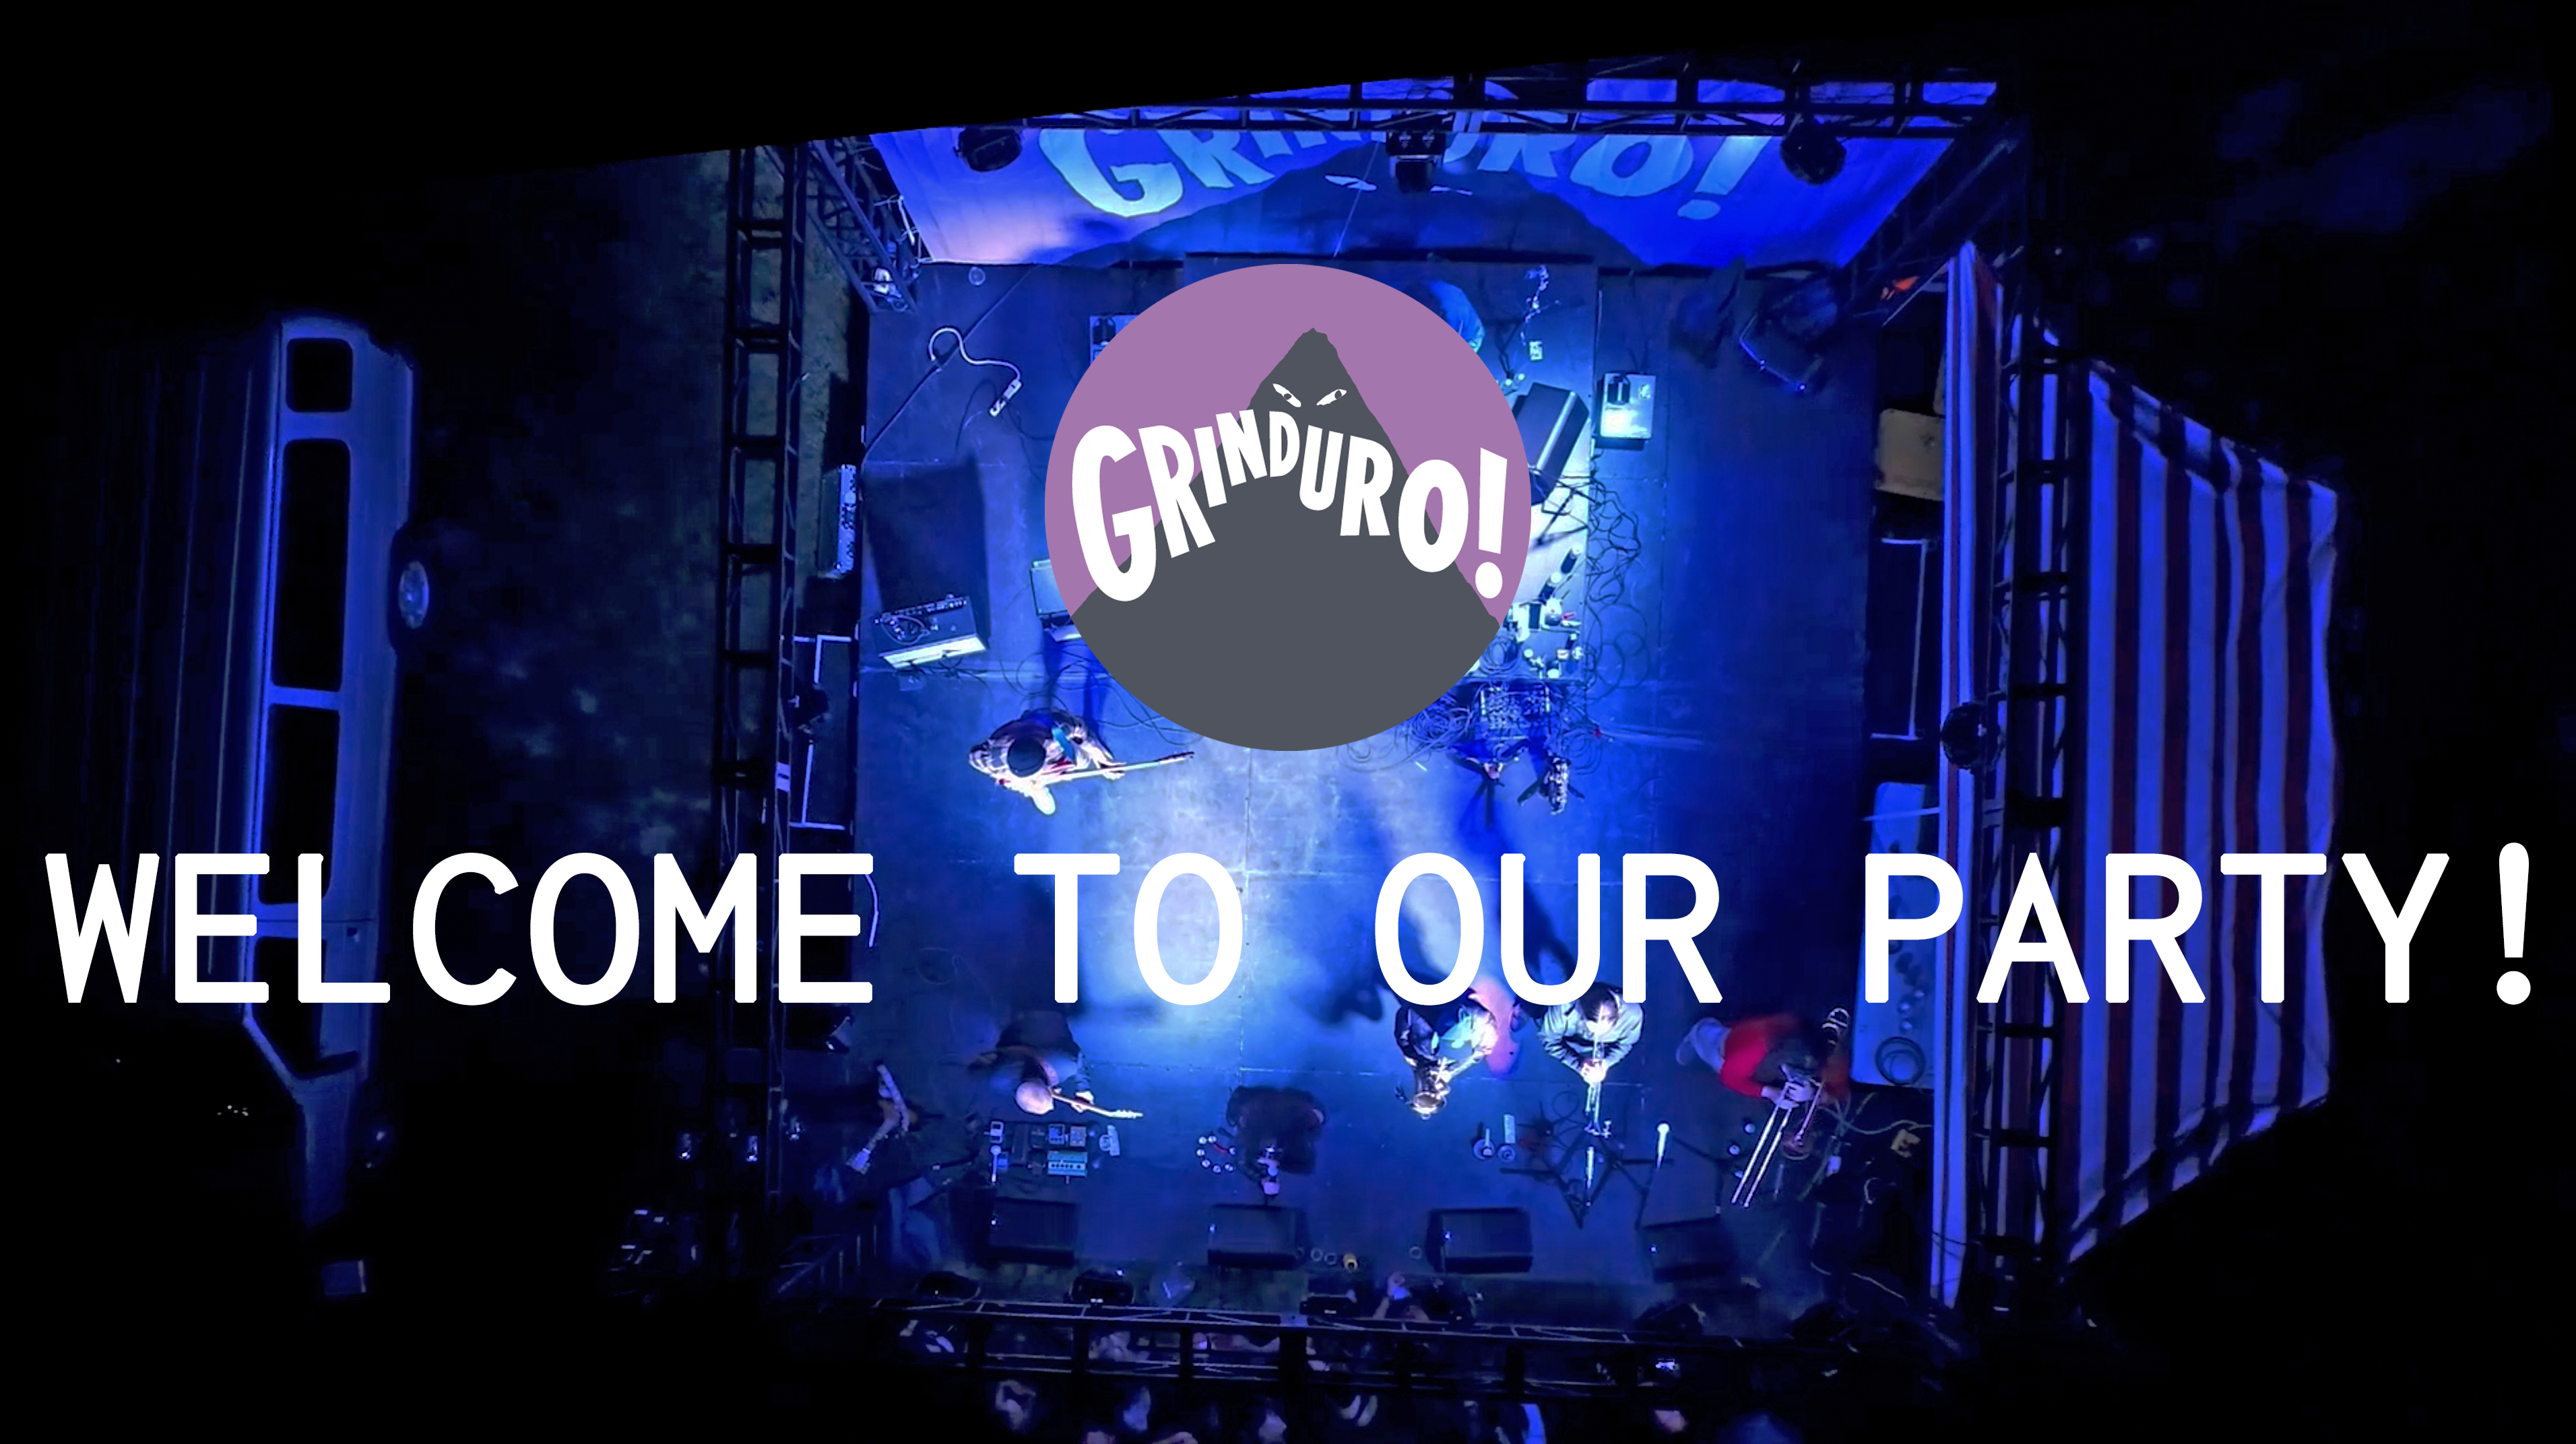 Grinduro, Welcome to our party